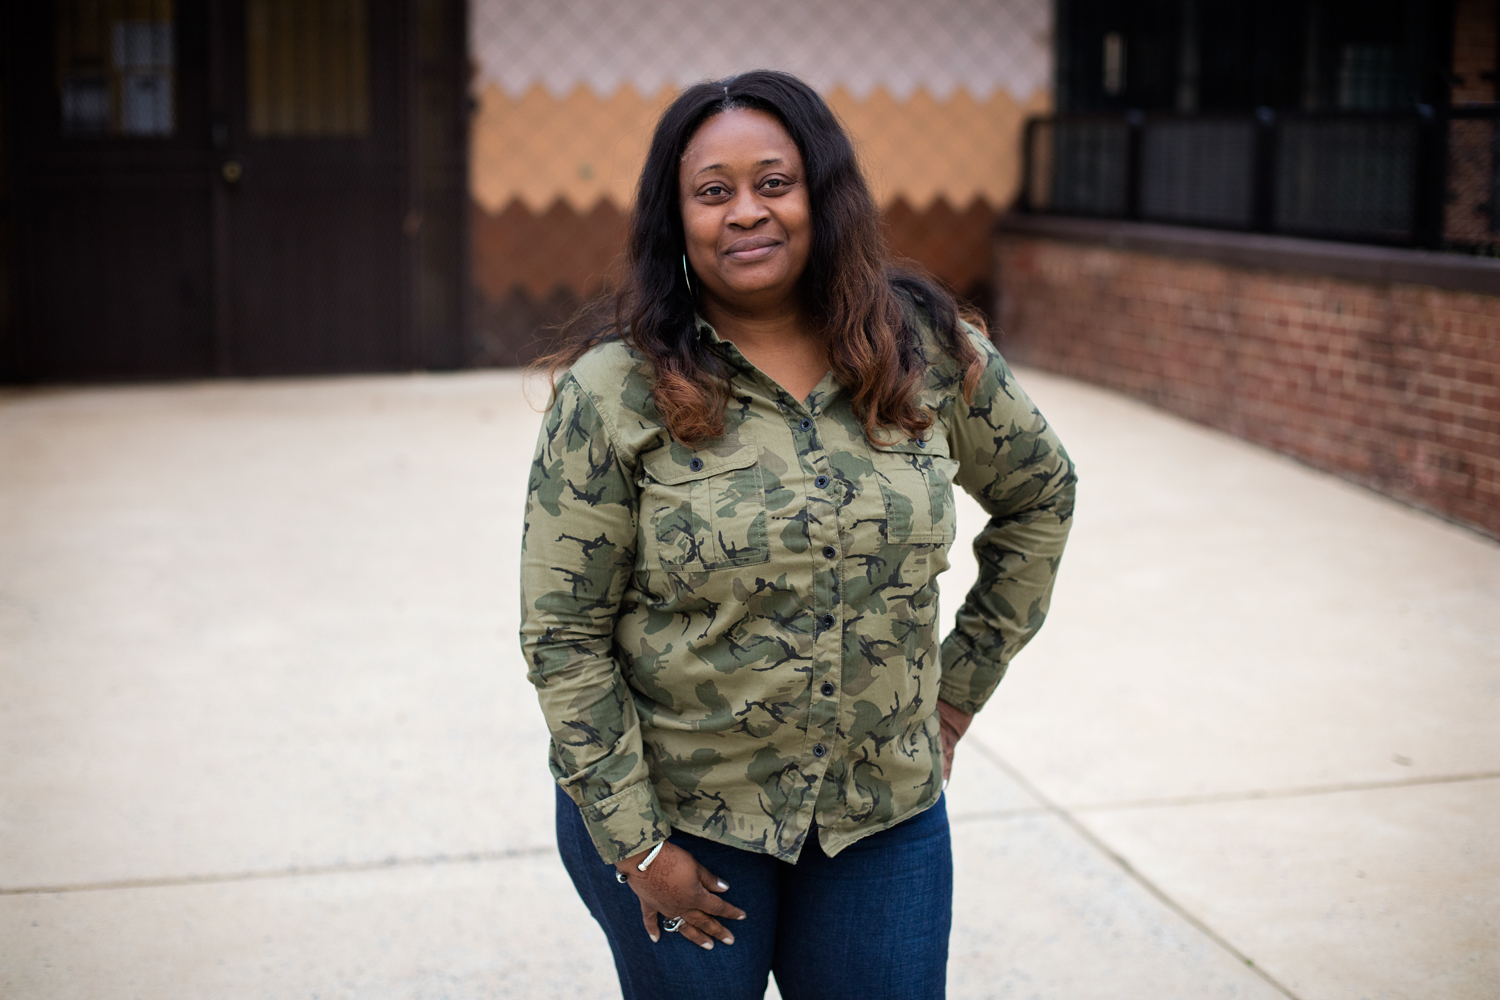 Tia Newman is a devoted leader who wears many hats as the Benning Terrace Resident Council president, Urban Institute's community liaison, and a champion for the safety of girls.